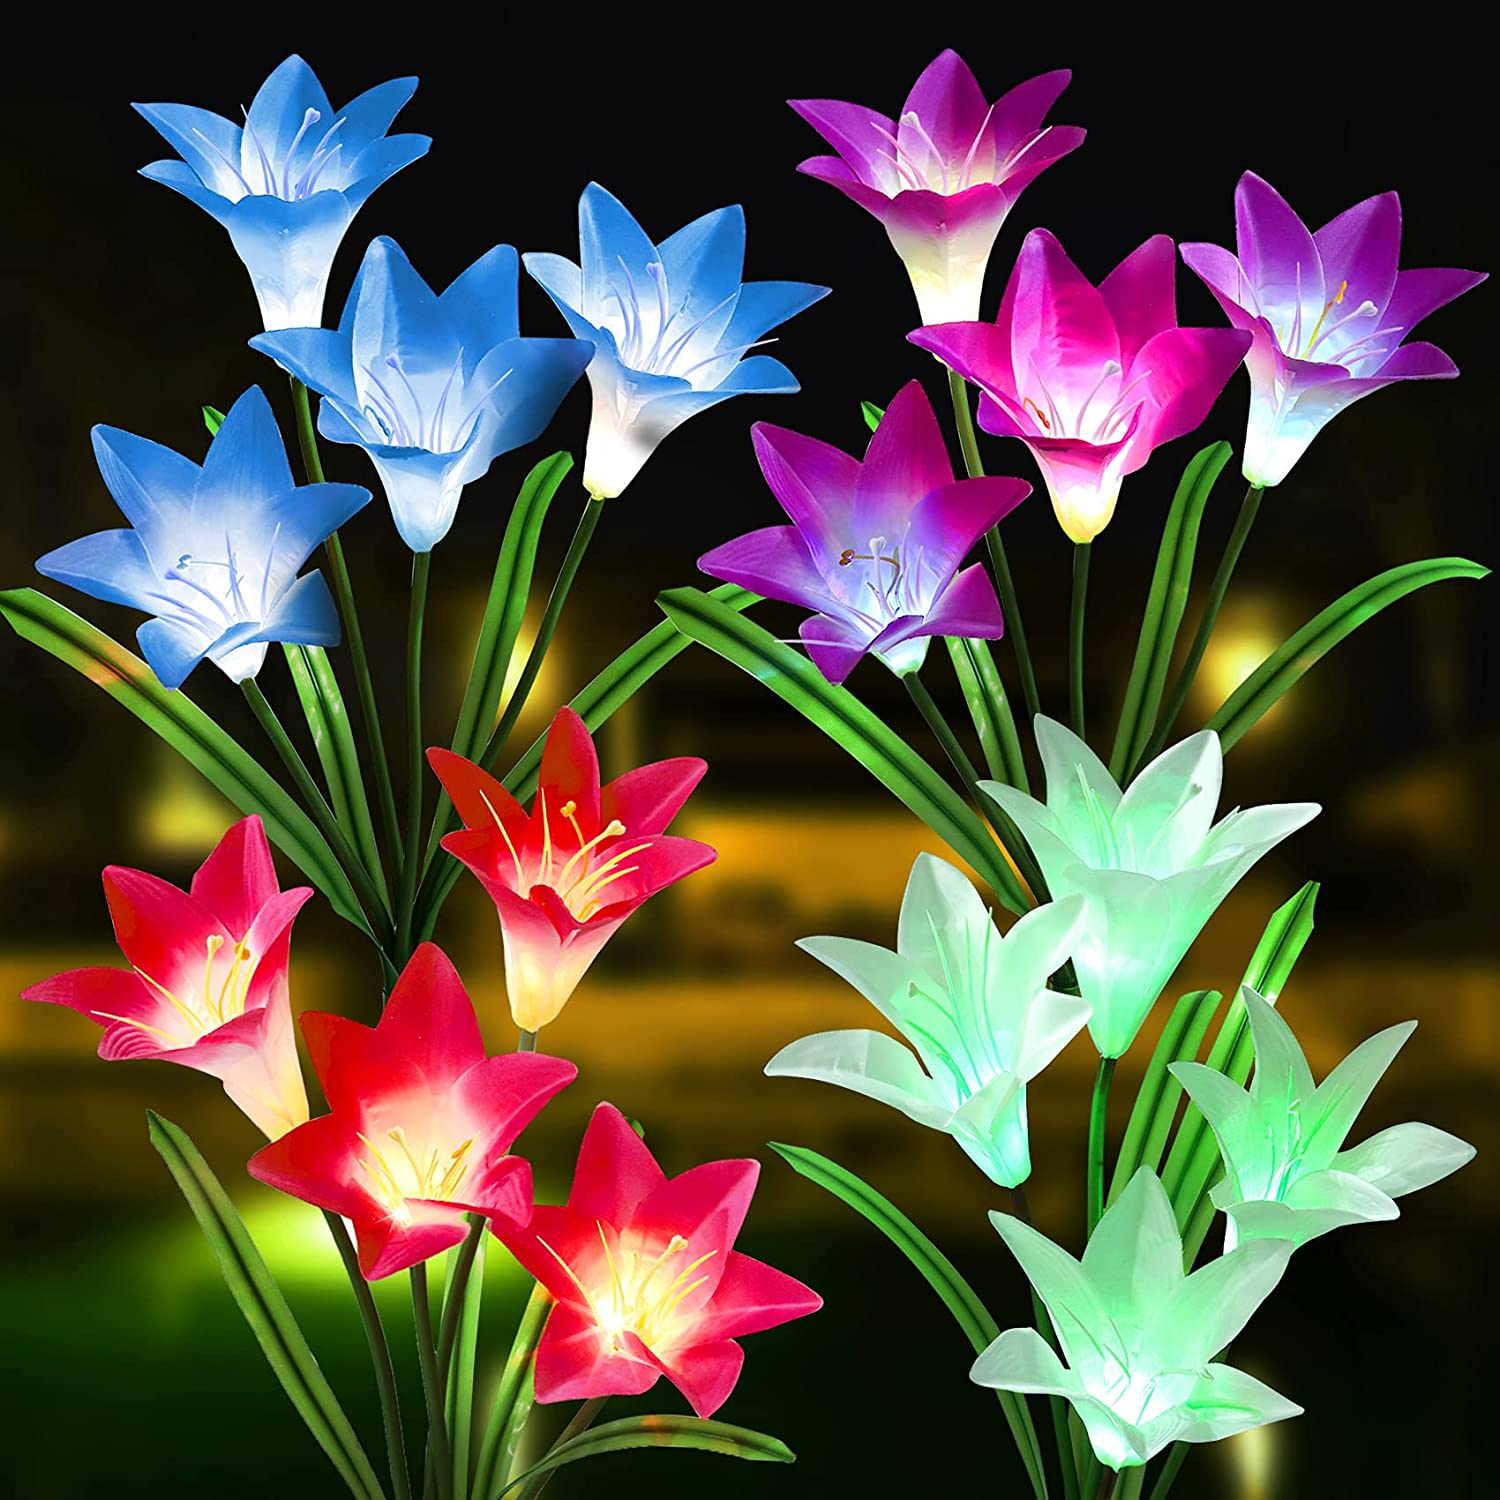 Outdoor Solar Lights, 4 Pack Solar Garden Lights with 16 Bigger Lily Flowers, Waterproof 7 Color Changing Outdoor Lights - Bigger Solar Panel for Garden Patio Yard Pathway Decoration